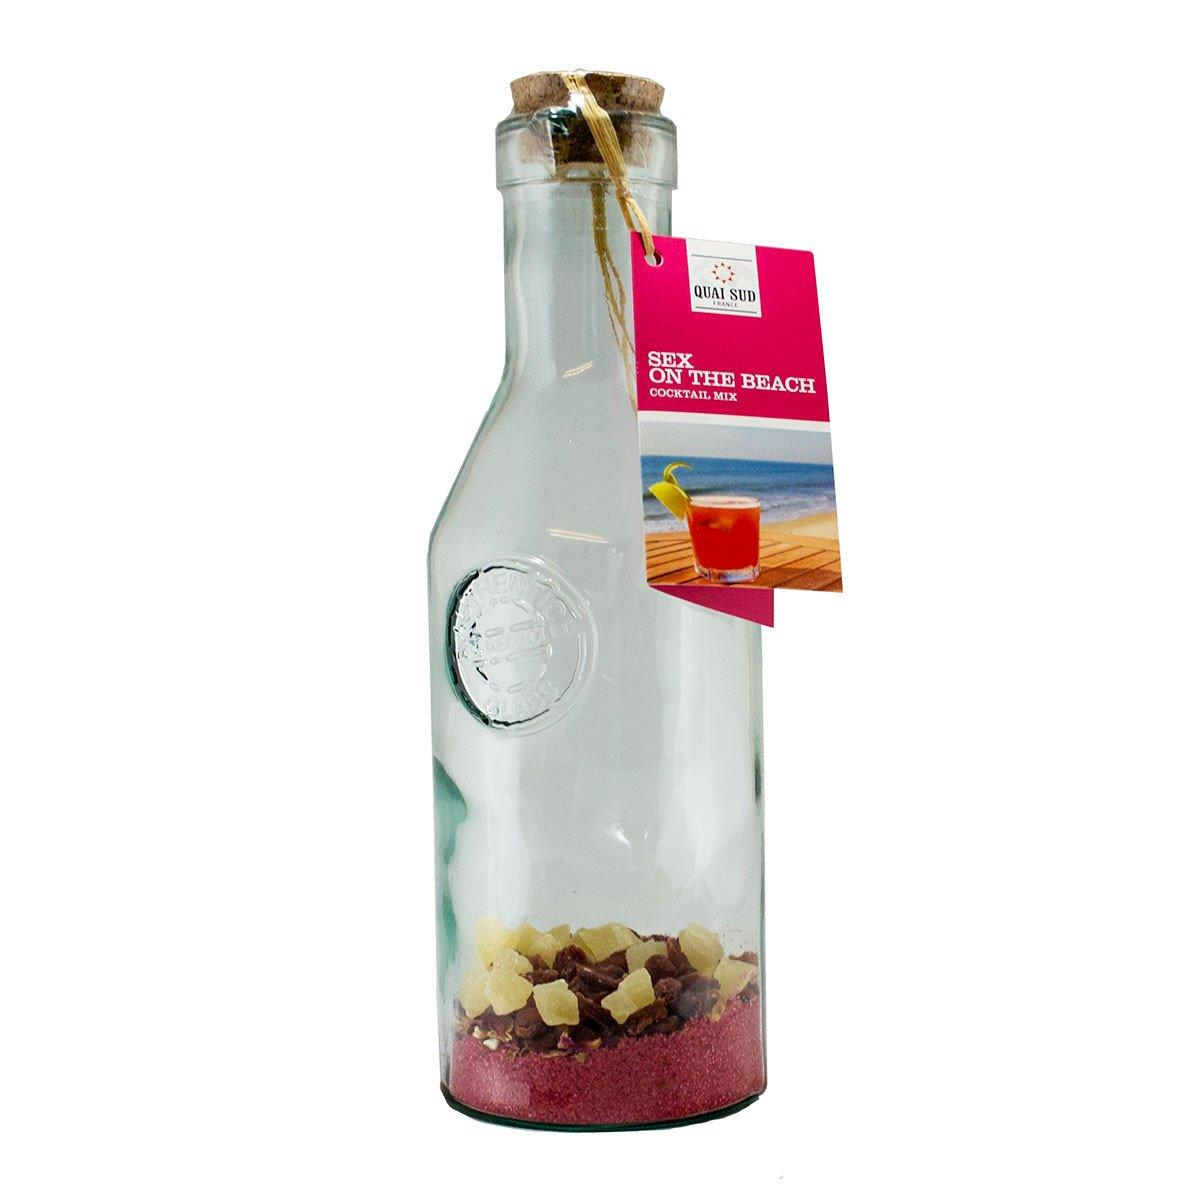 200e38051341 Sex On The Beach Carafe Cocktail Mix | Only £16.99